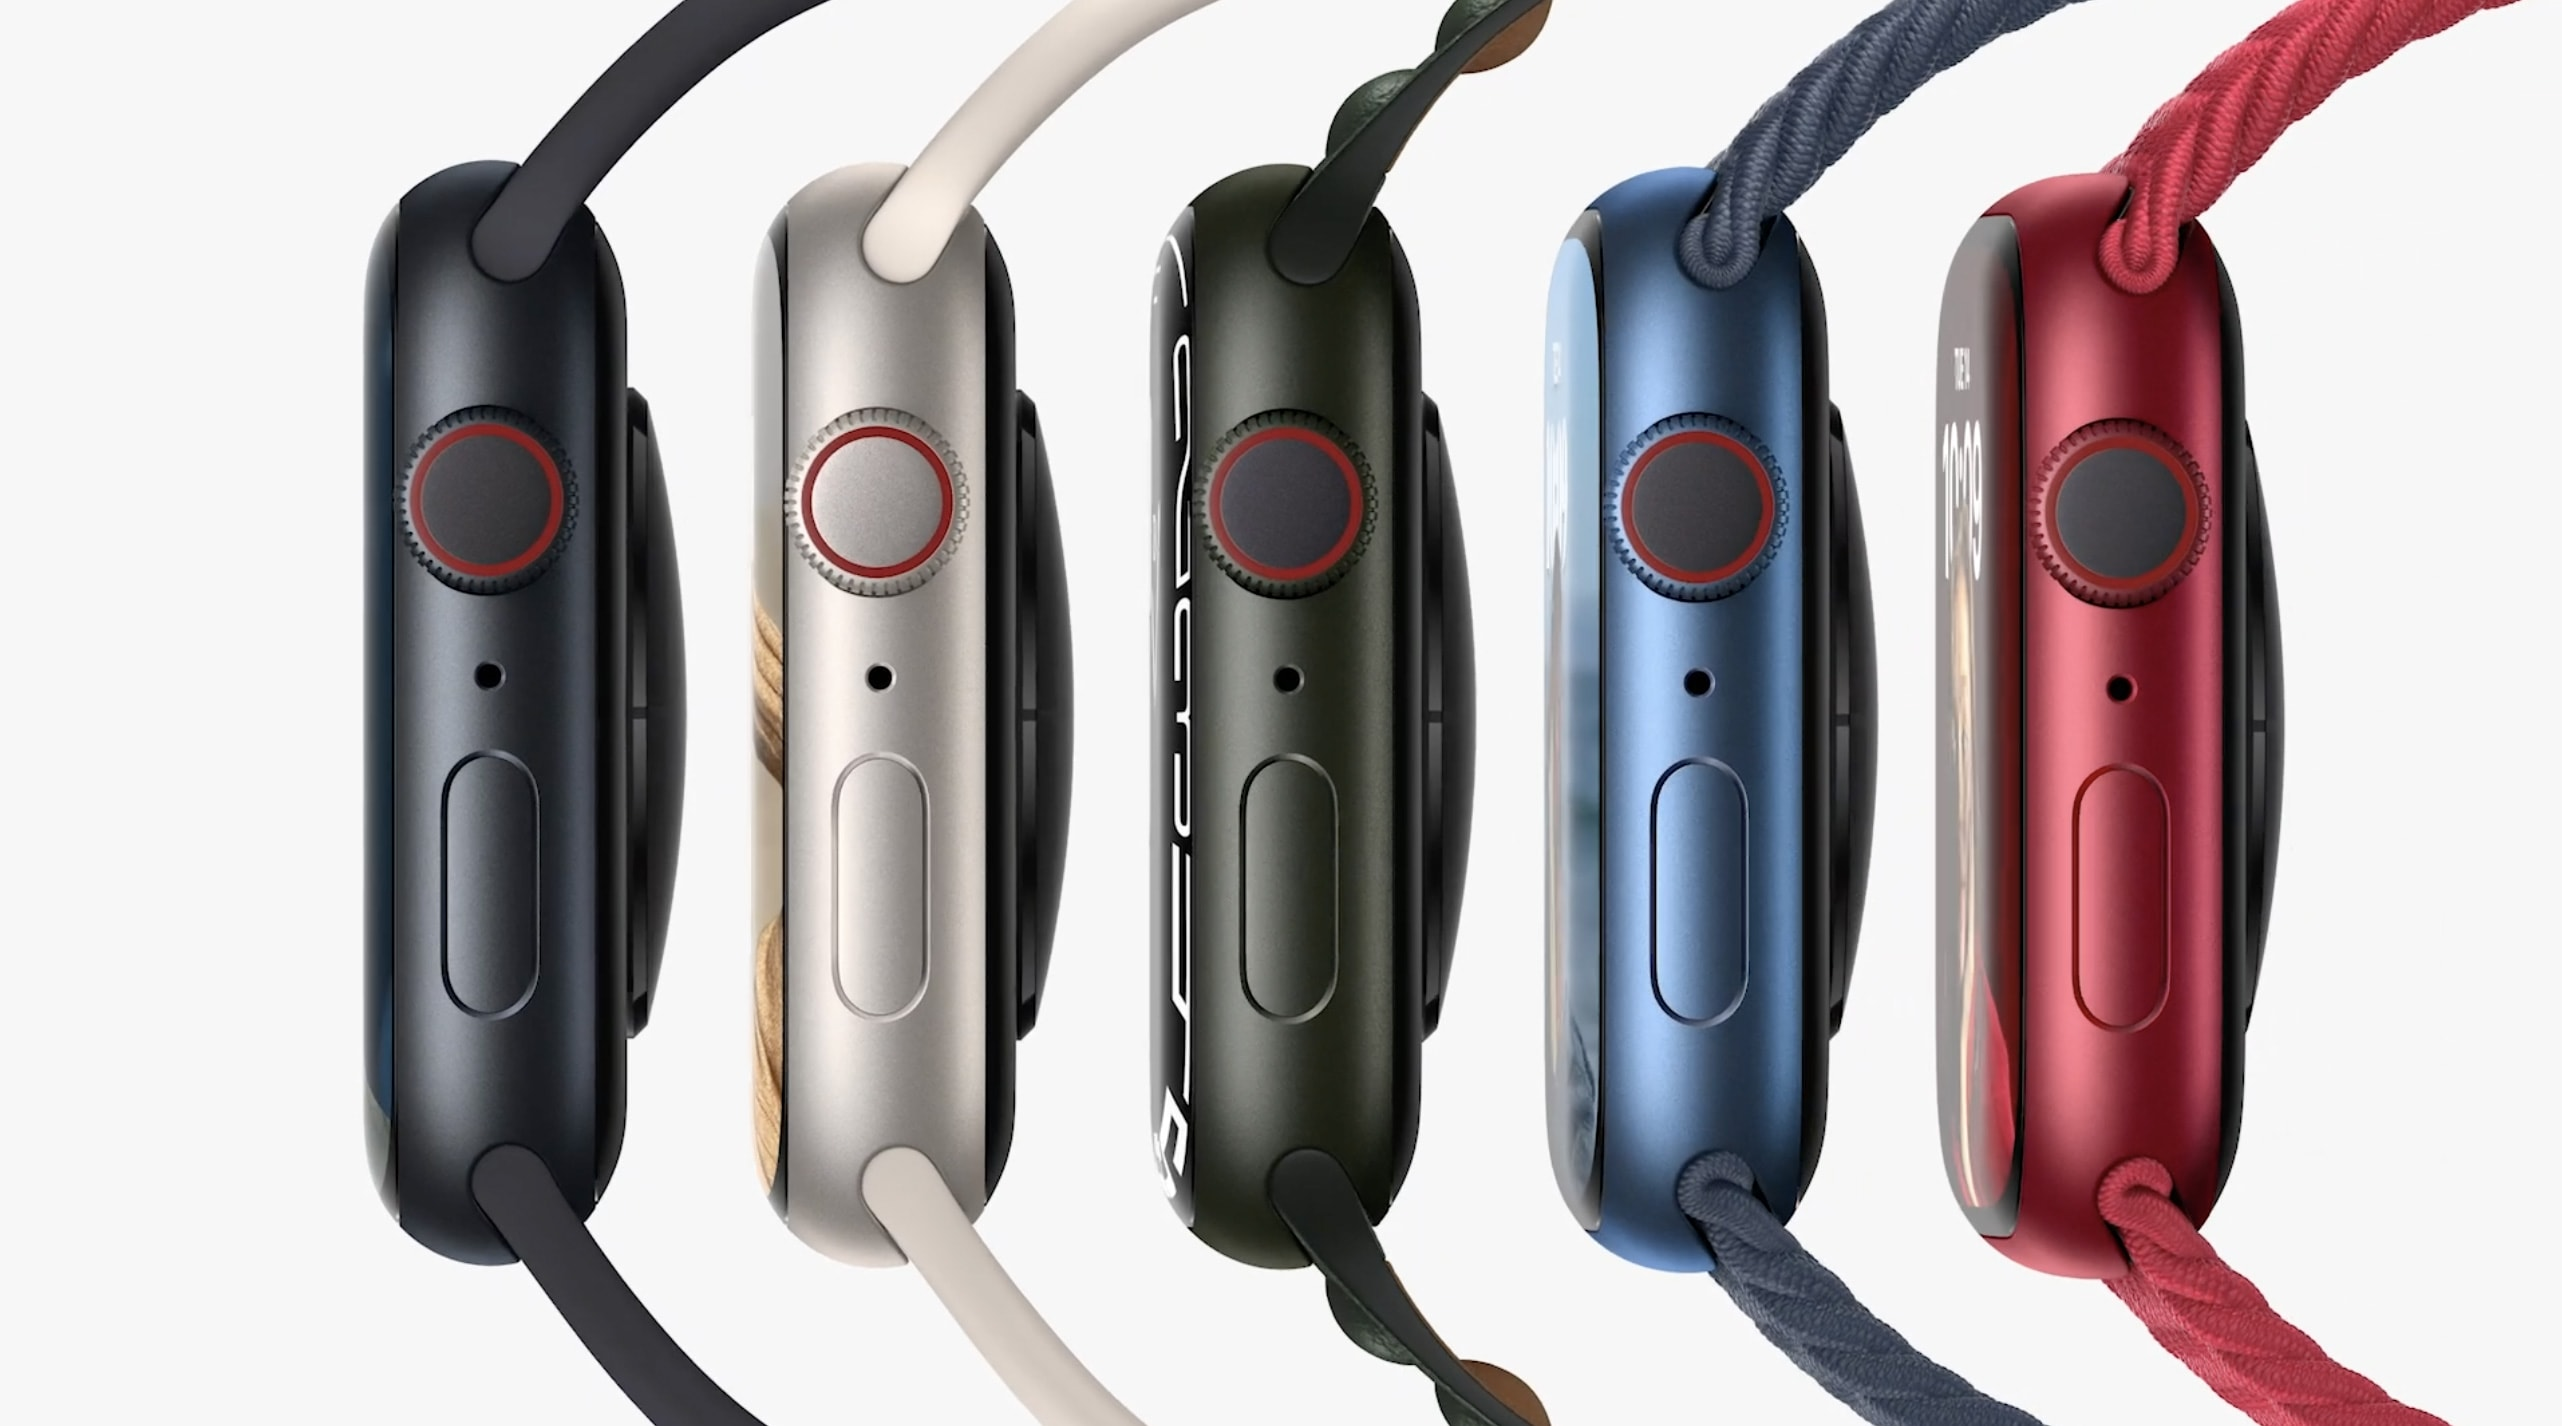 Apple Watch Series 7 color options are similar to Series 6